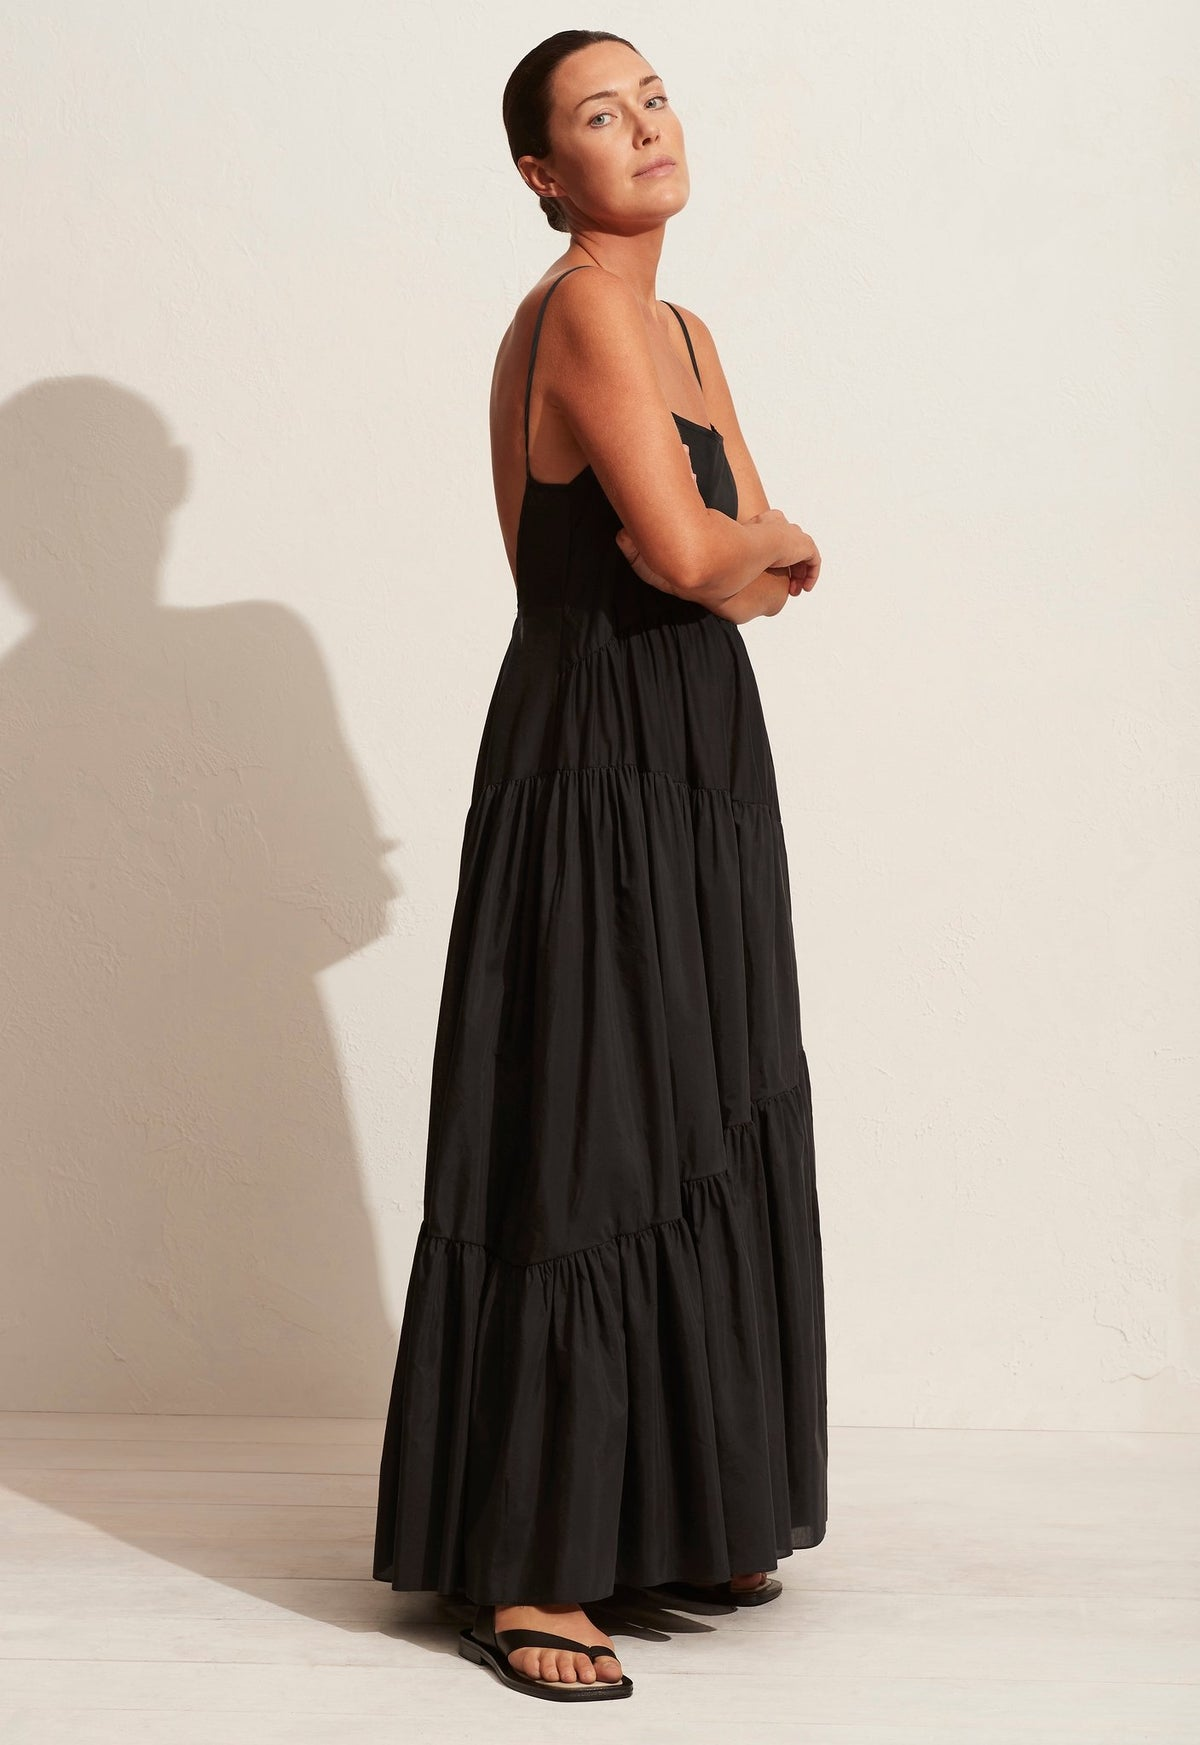 The Asymmetric Tiered Sundress